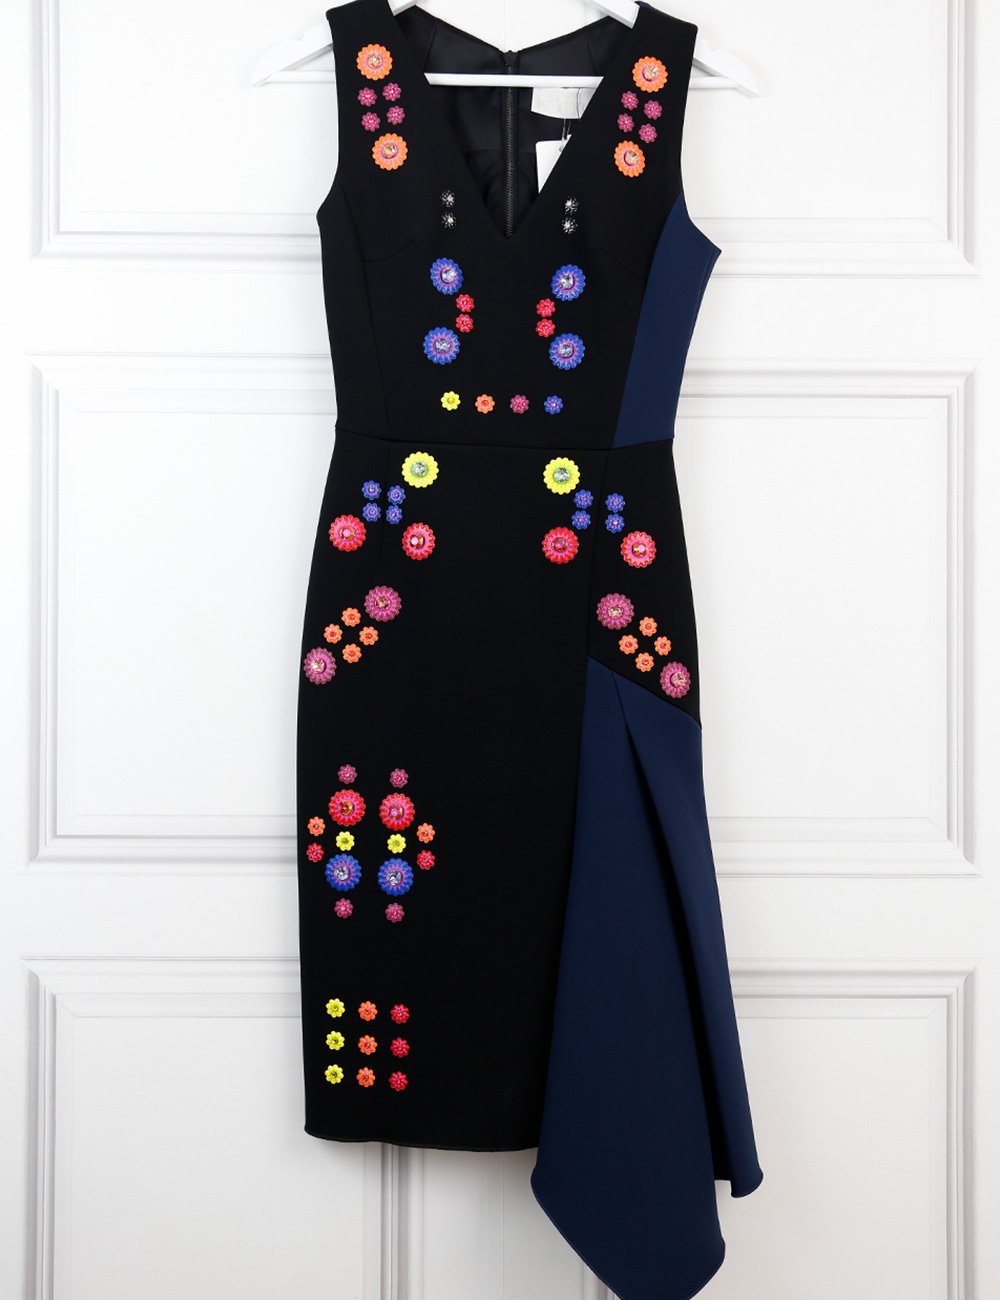 Peter Pilotto multicolour asymmetric sleeveless dress with floral jewel embellishments 8UK- My Wardrobe Mistakes